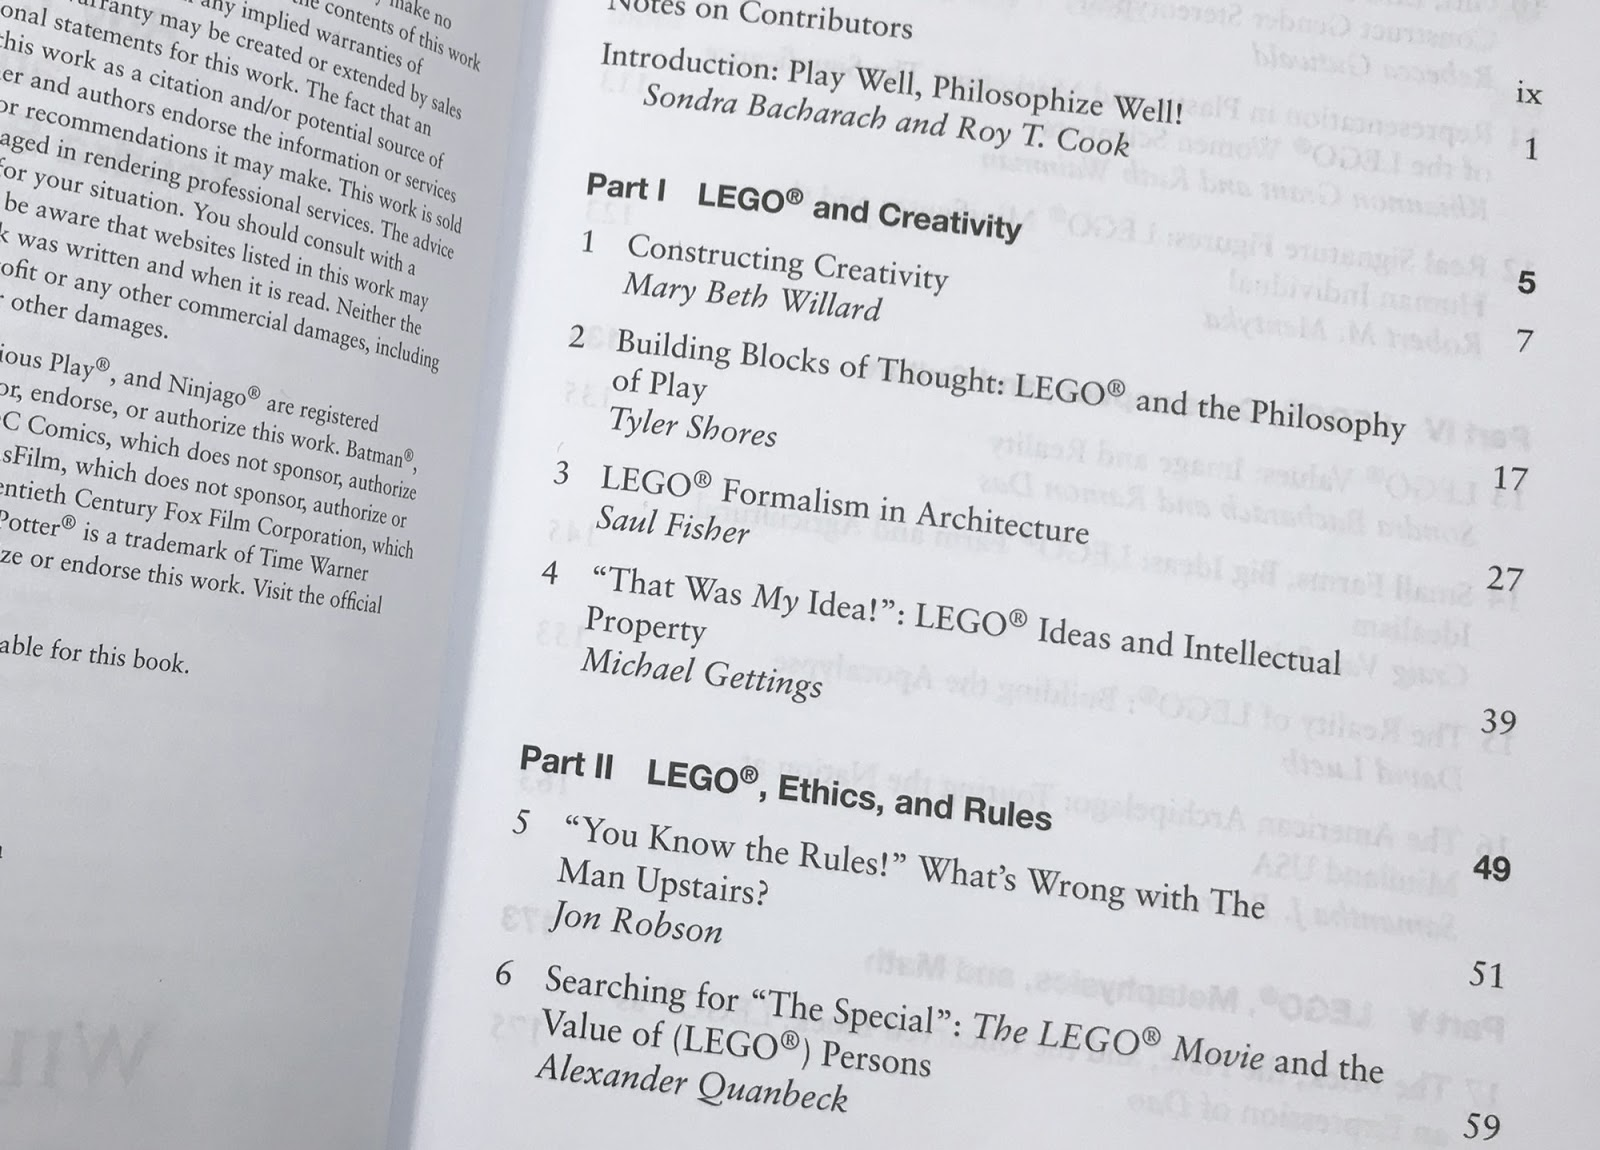 book review lego® and philosophy new elementary a lego® blog  from the opening essay mary beth willard s constructing creativity there is a sense that lego building improves and aids human experience by developing